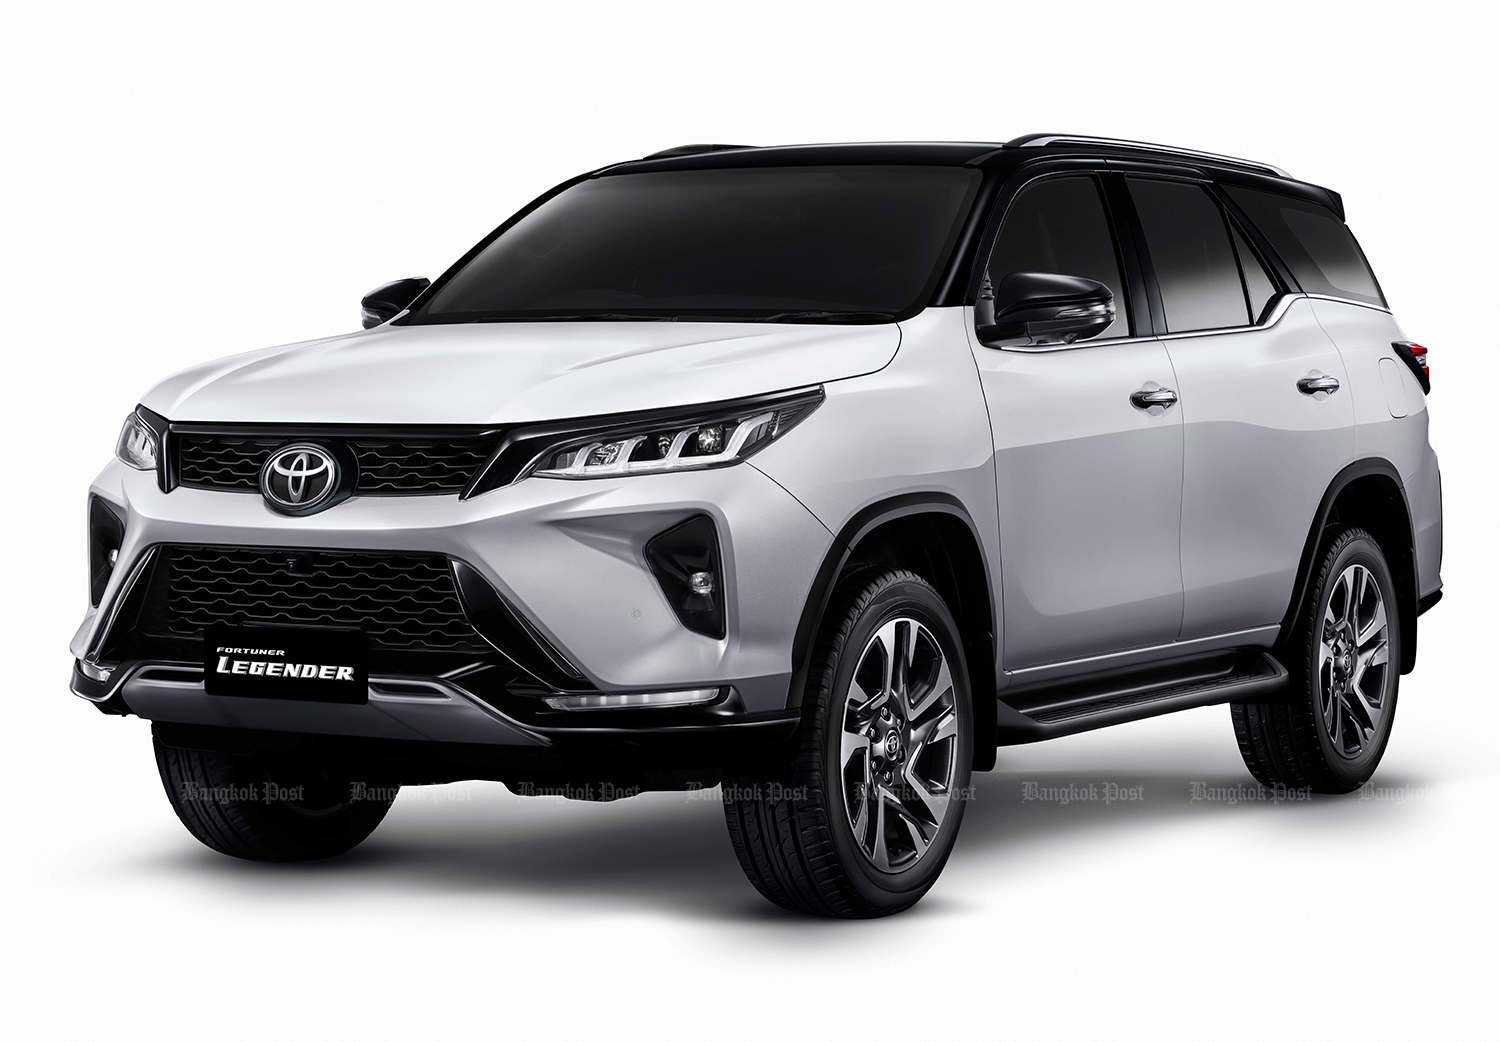 2020 Toyota Fortuner Price and Review